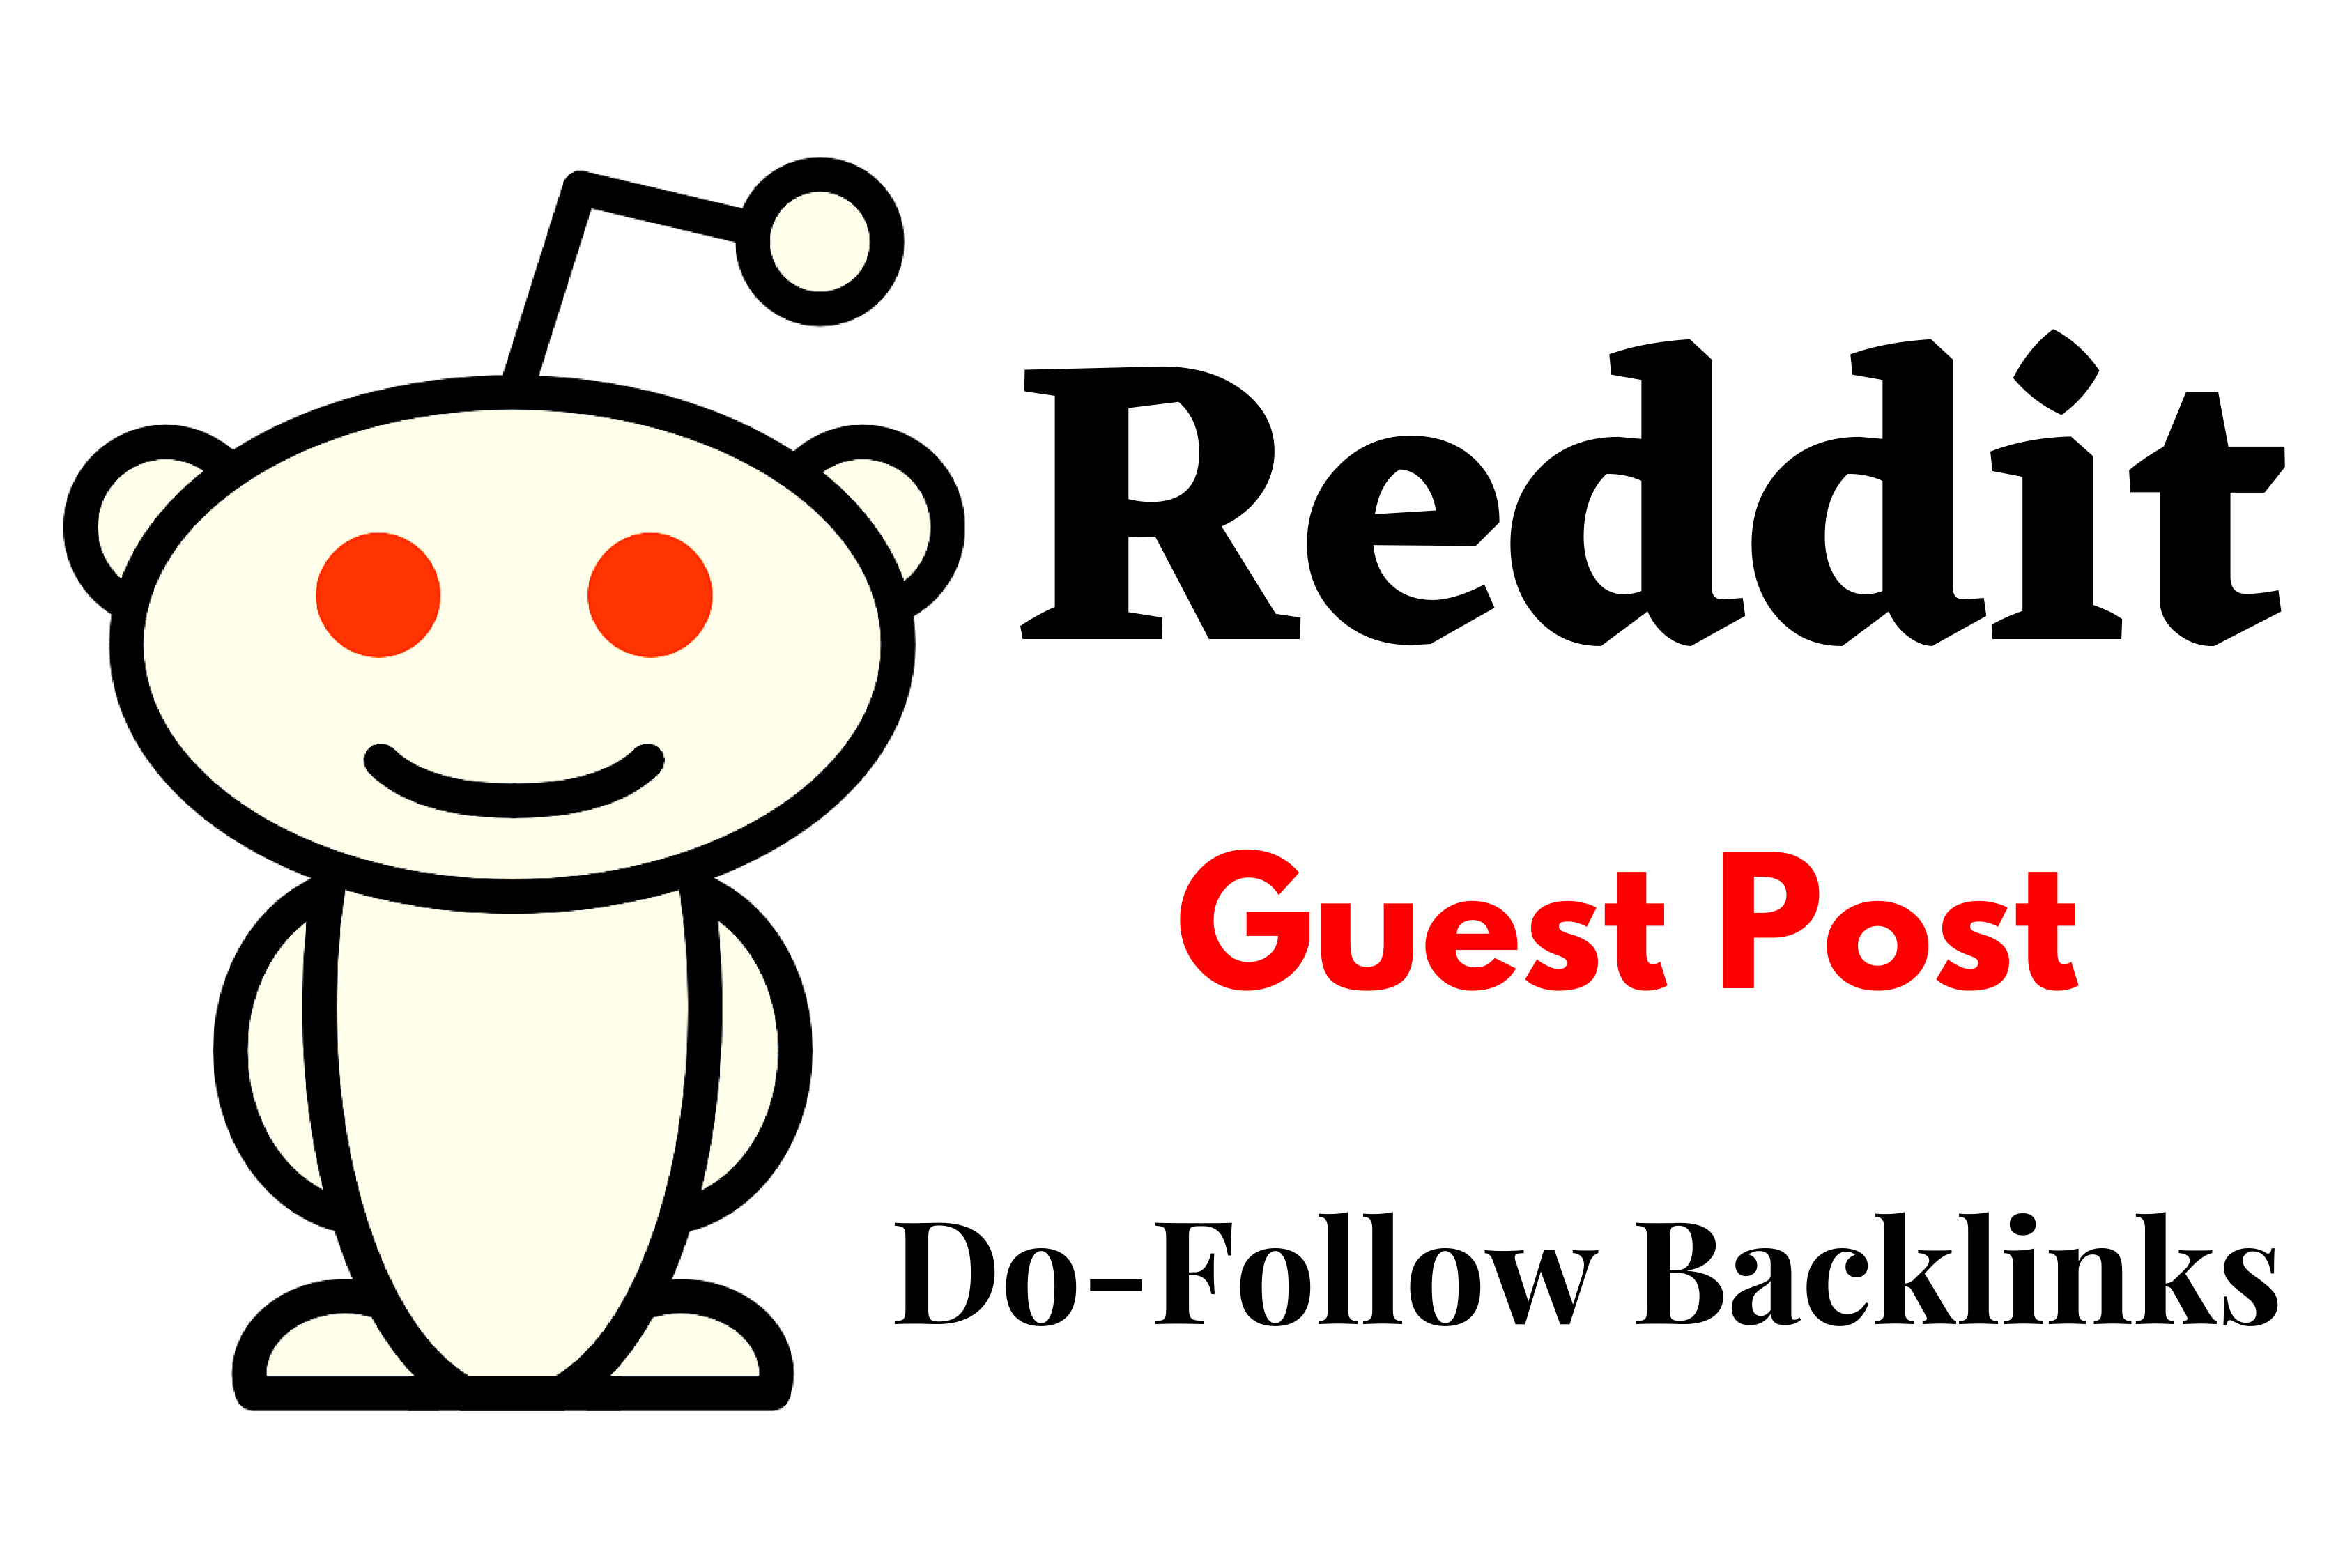 Powerful 10 Reddit Guest Post Backlinks For your Targeted Traffic ON high DA